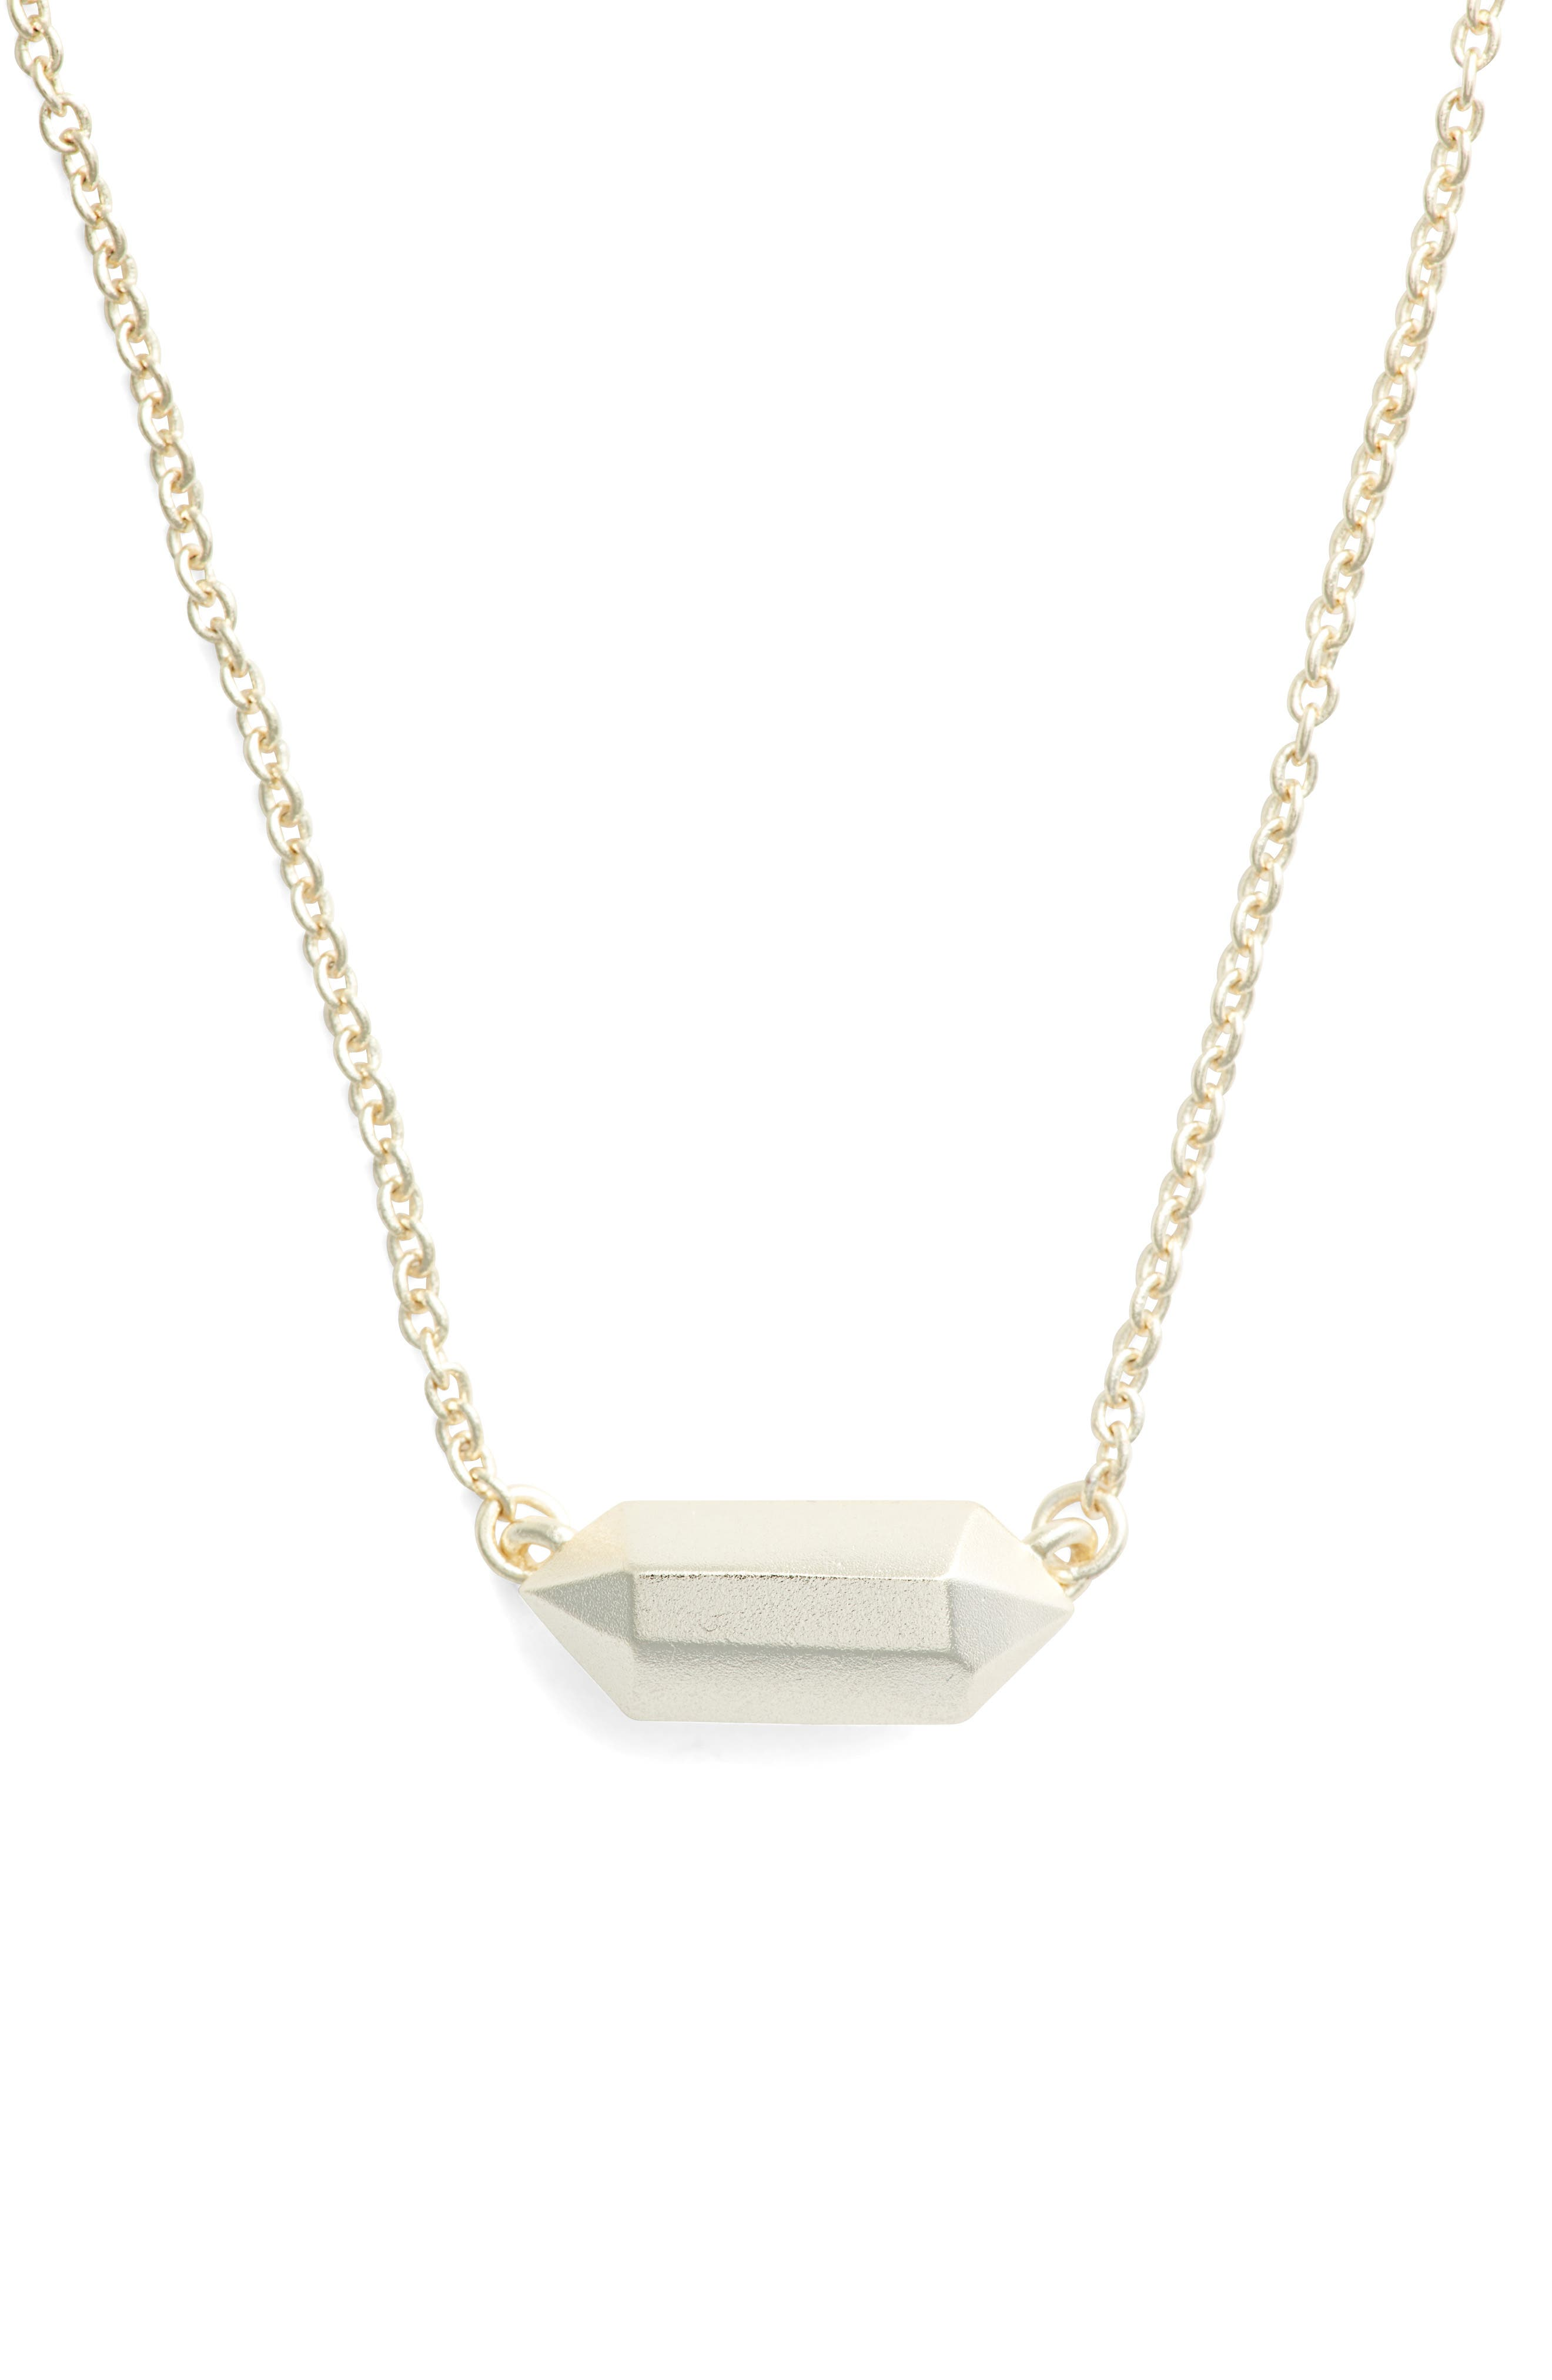 Kendra Scott Charly Necklace